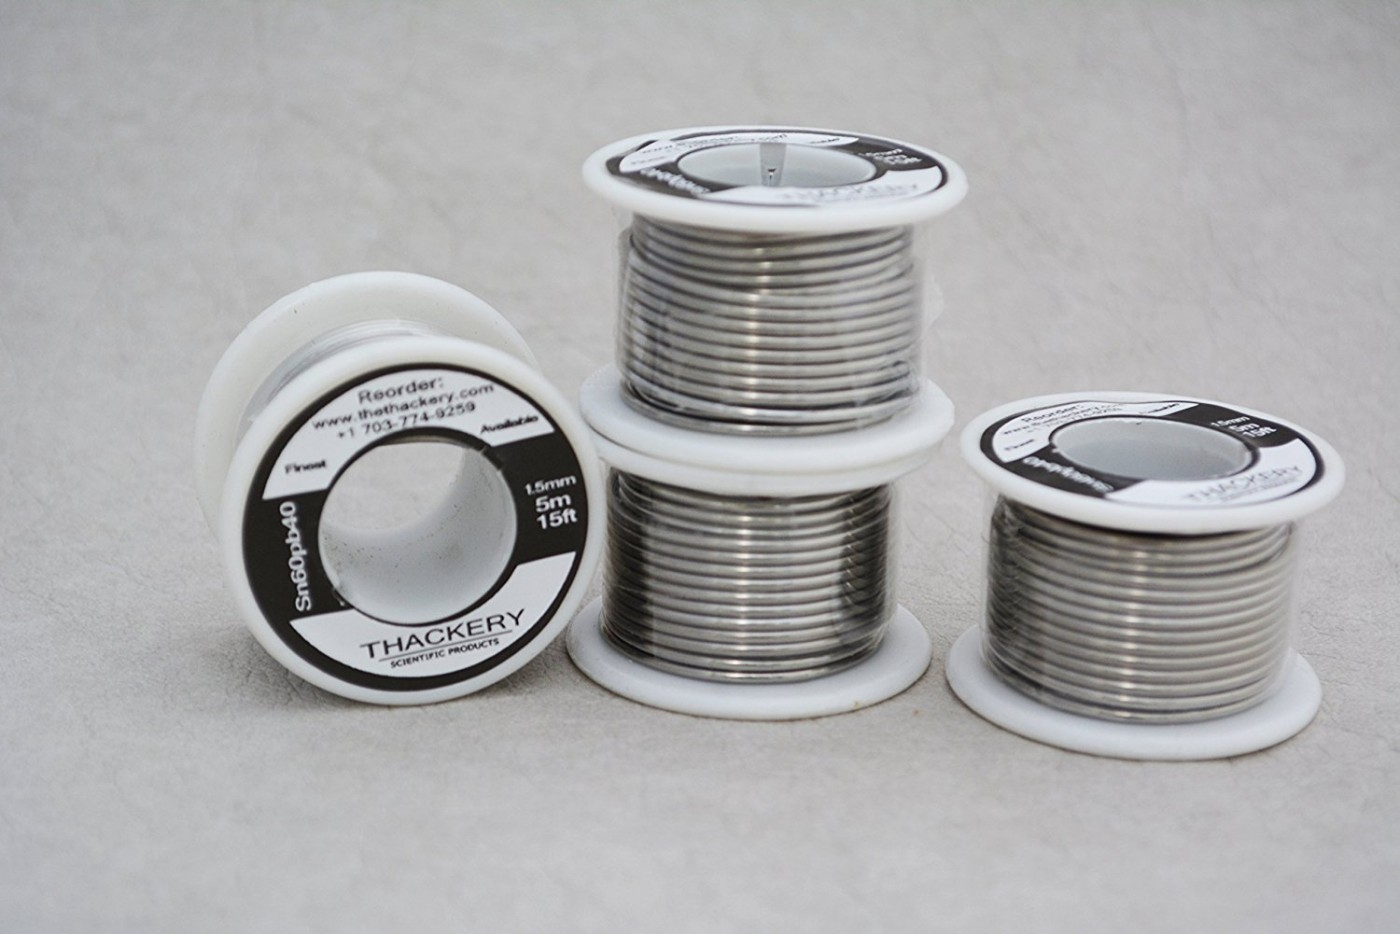 Thackery Sn60pb40 Flux Core Solder Wire - 1.5mm thickness - sold by ...